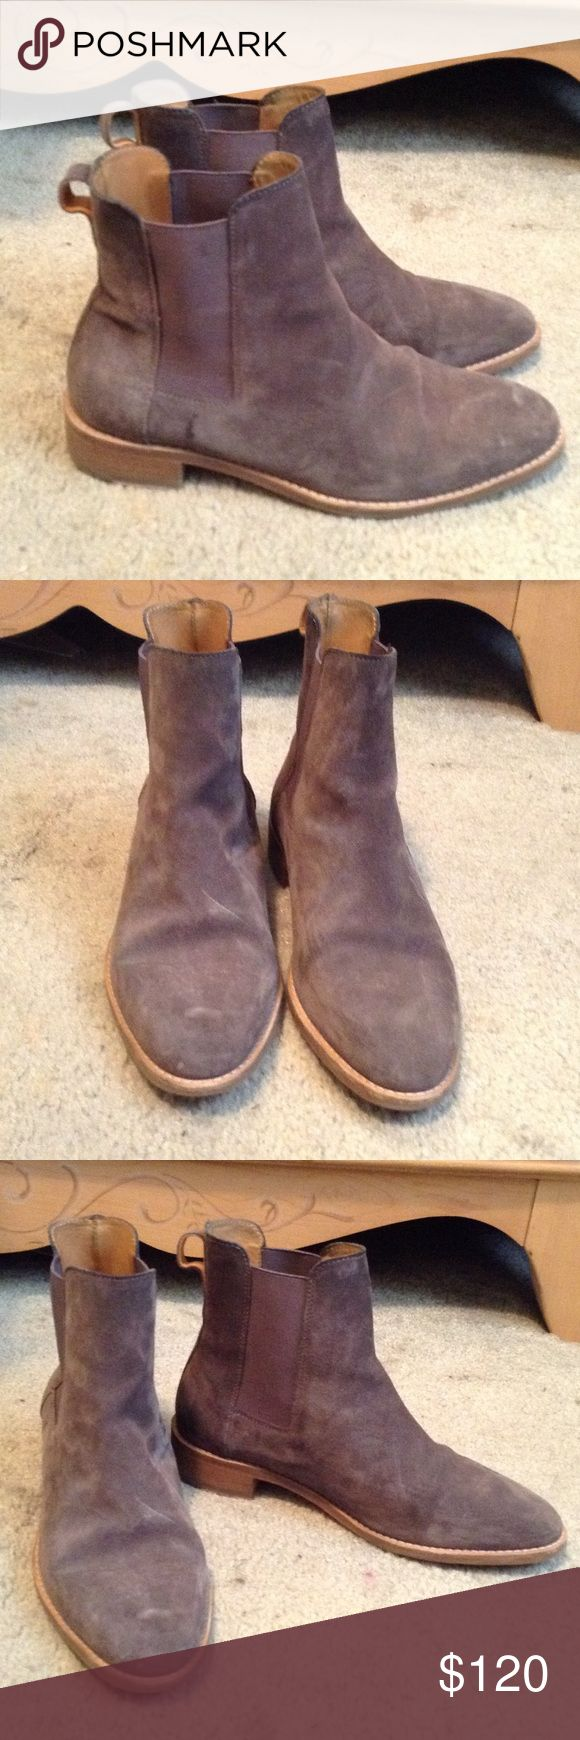 A/W 16 COS Chelsea boots size 7.5 Awesome gray suede Chelsea boots. NO TRADES! COS Shoes Ankle Boots & Booties